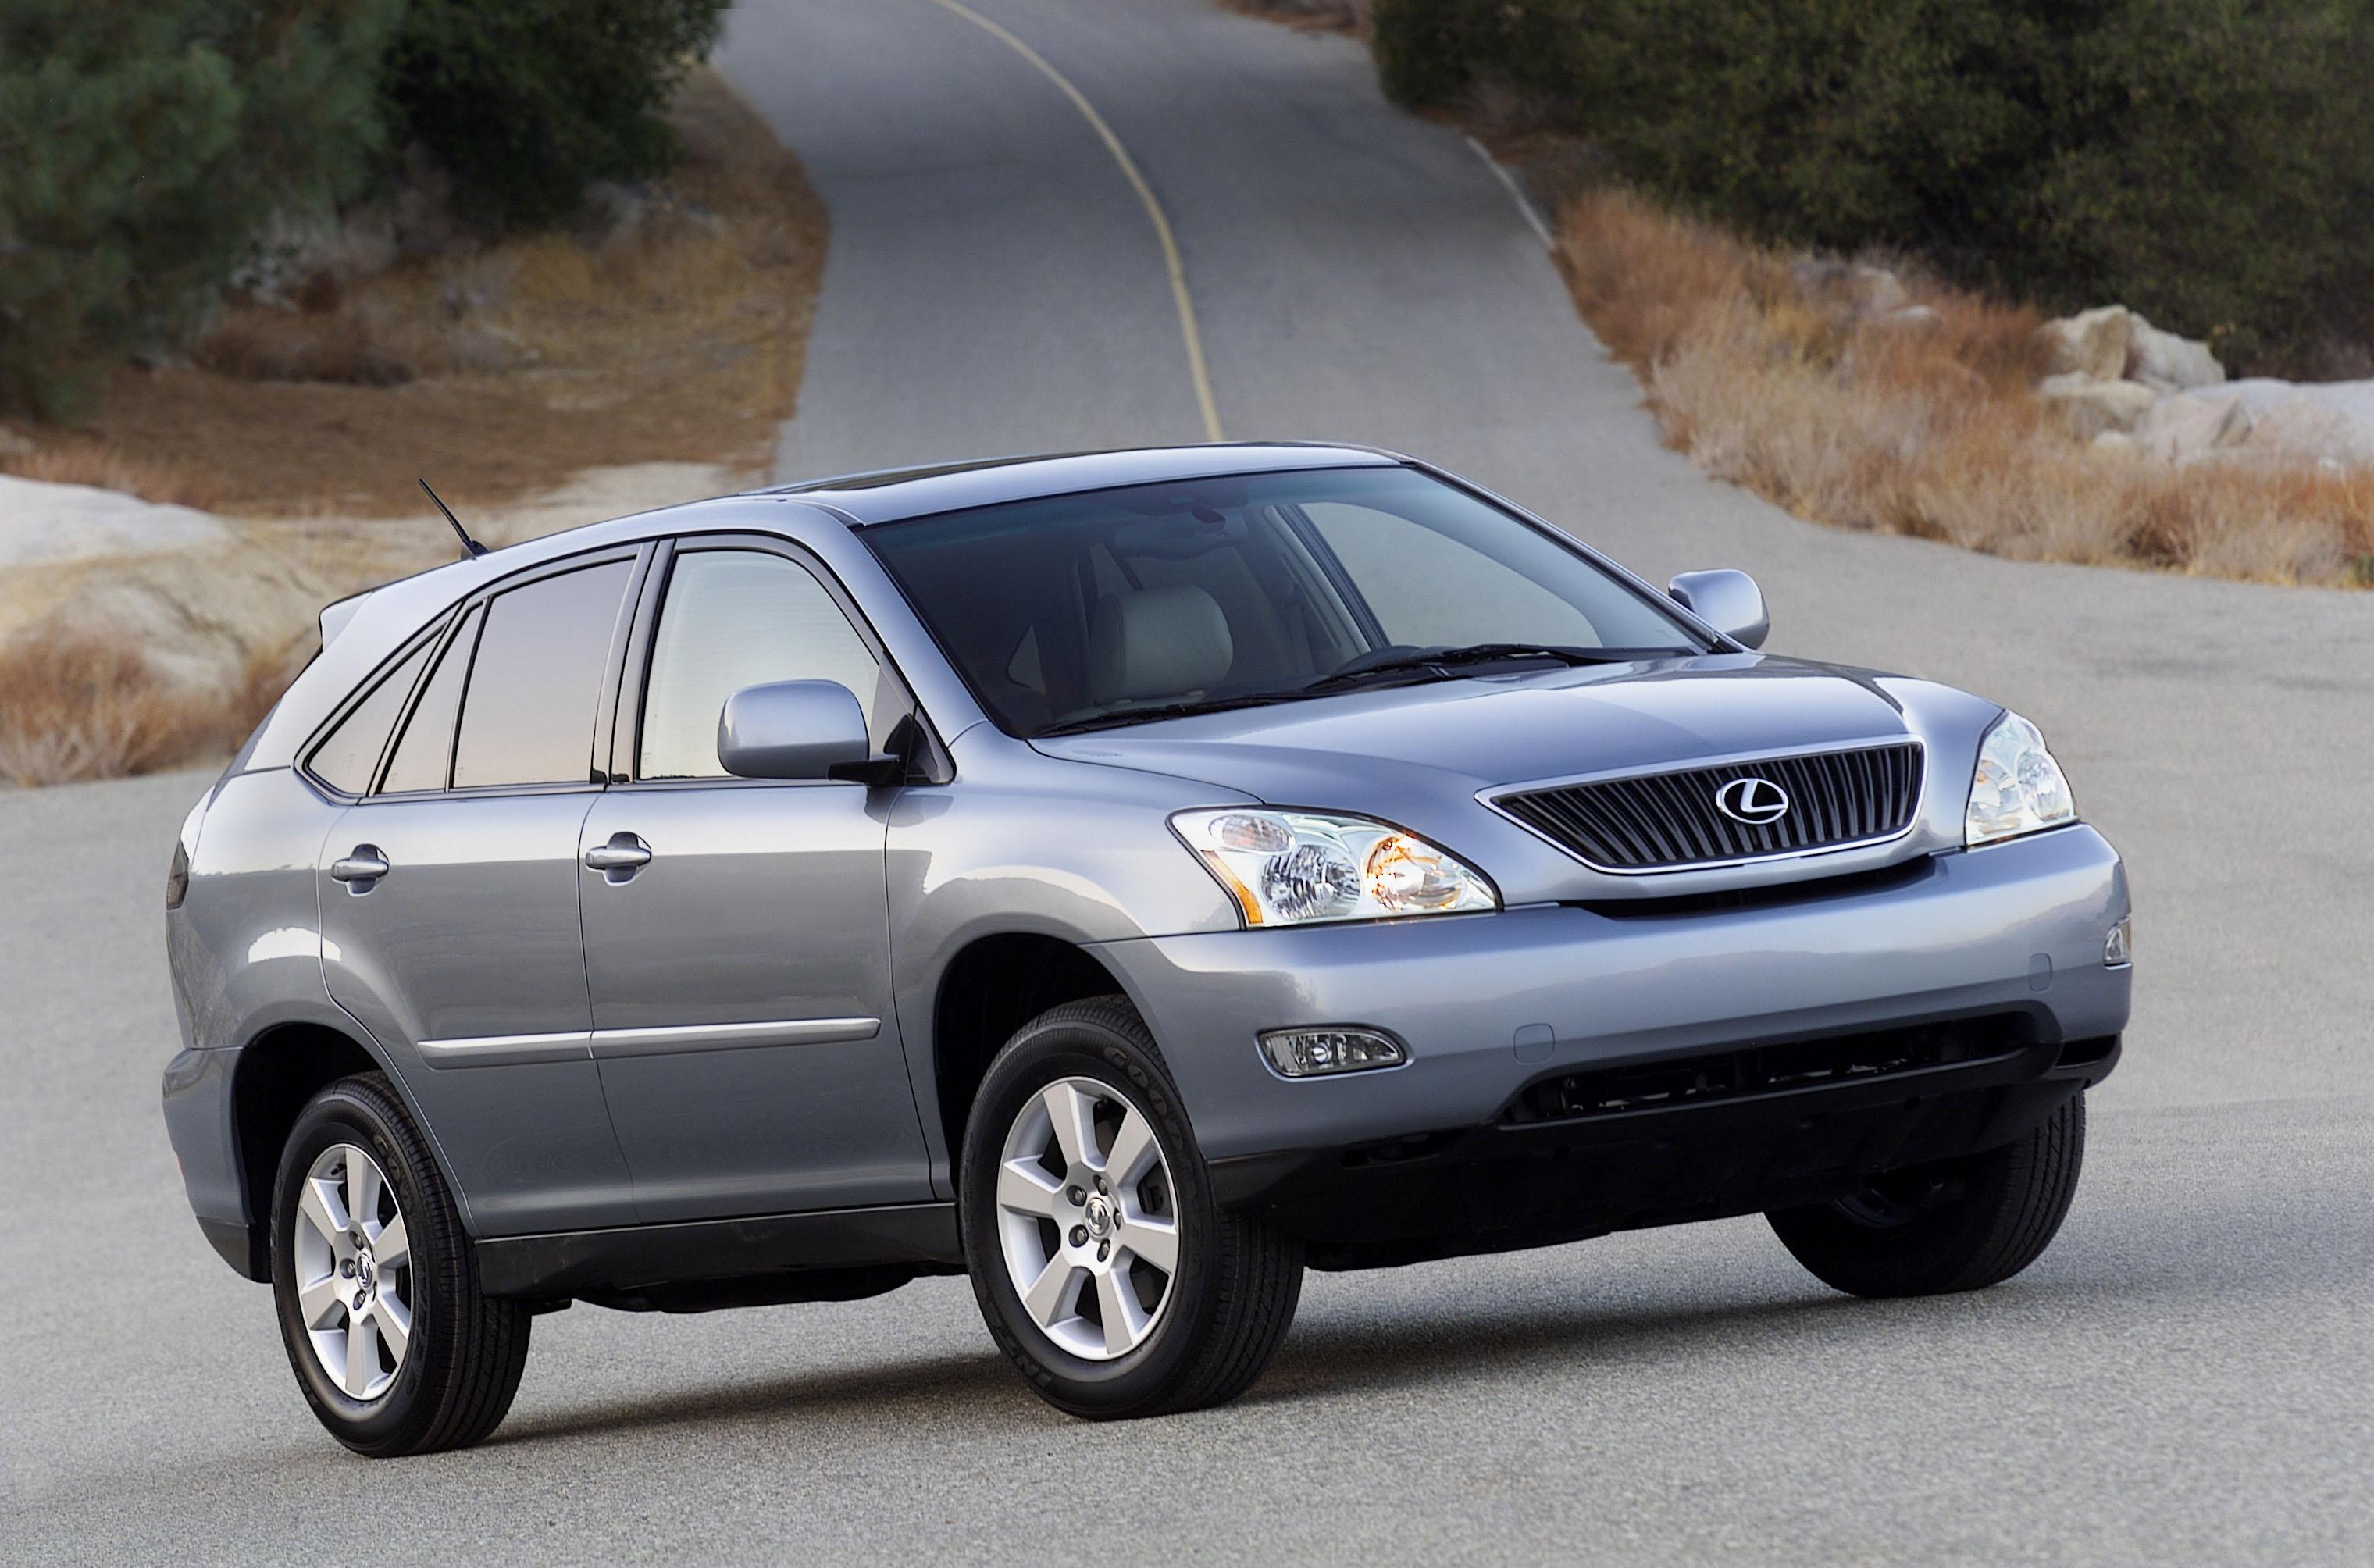 2008 lexus rx 350 luxury suv prices announced news top speed. Black Bedroom Furniture Sets. Home Design Ideas